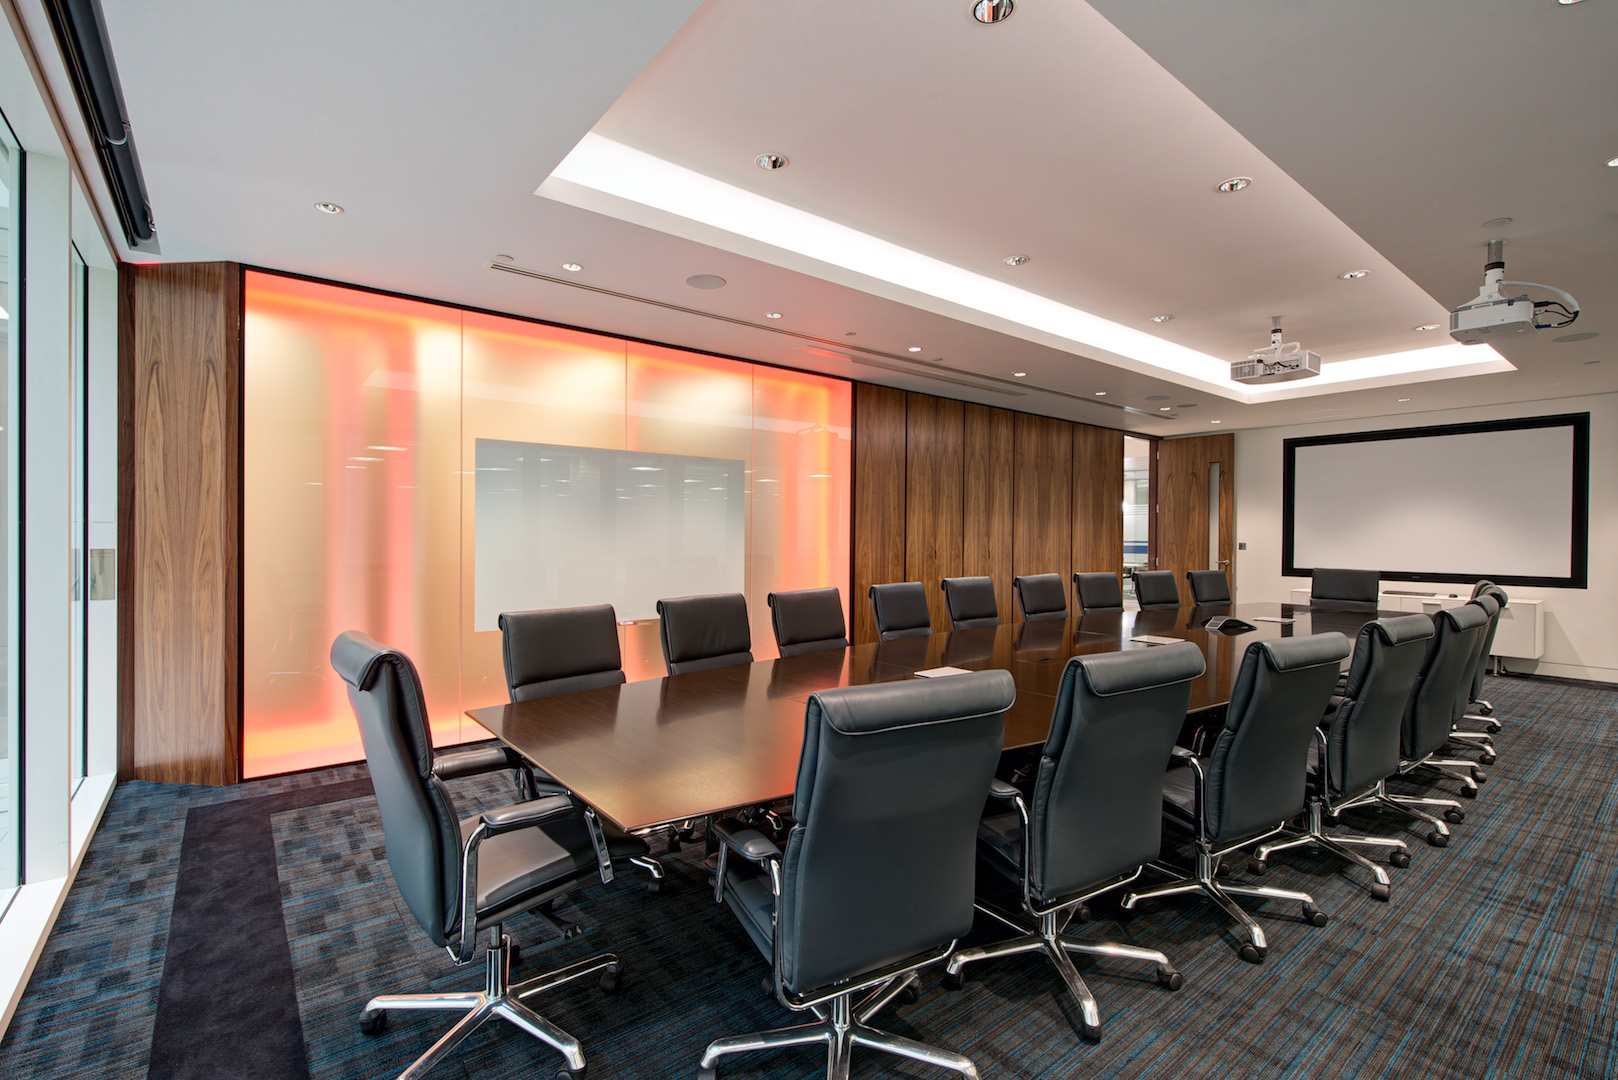 Newline Group boardoom Case Study Image